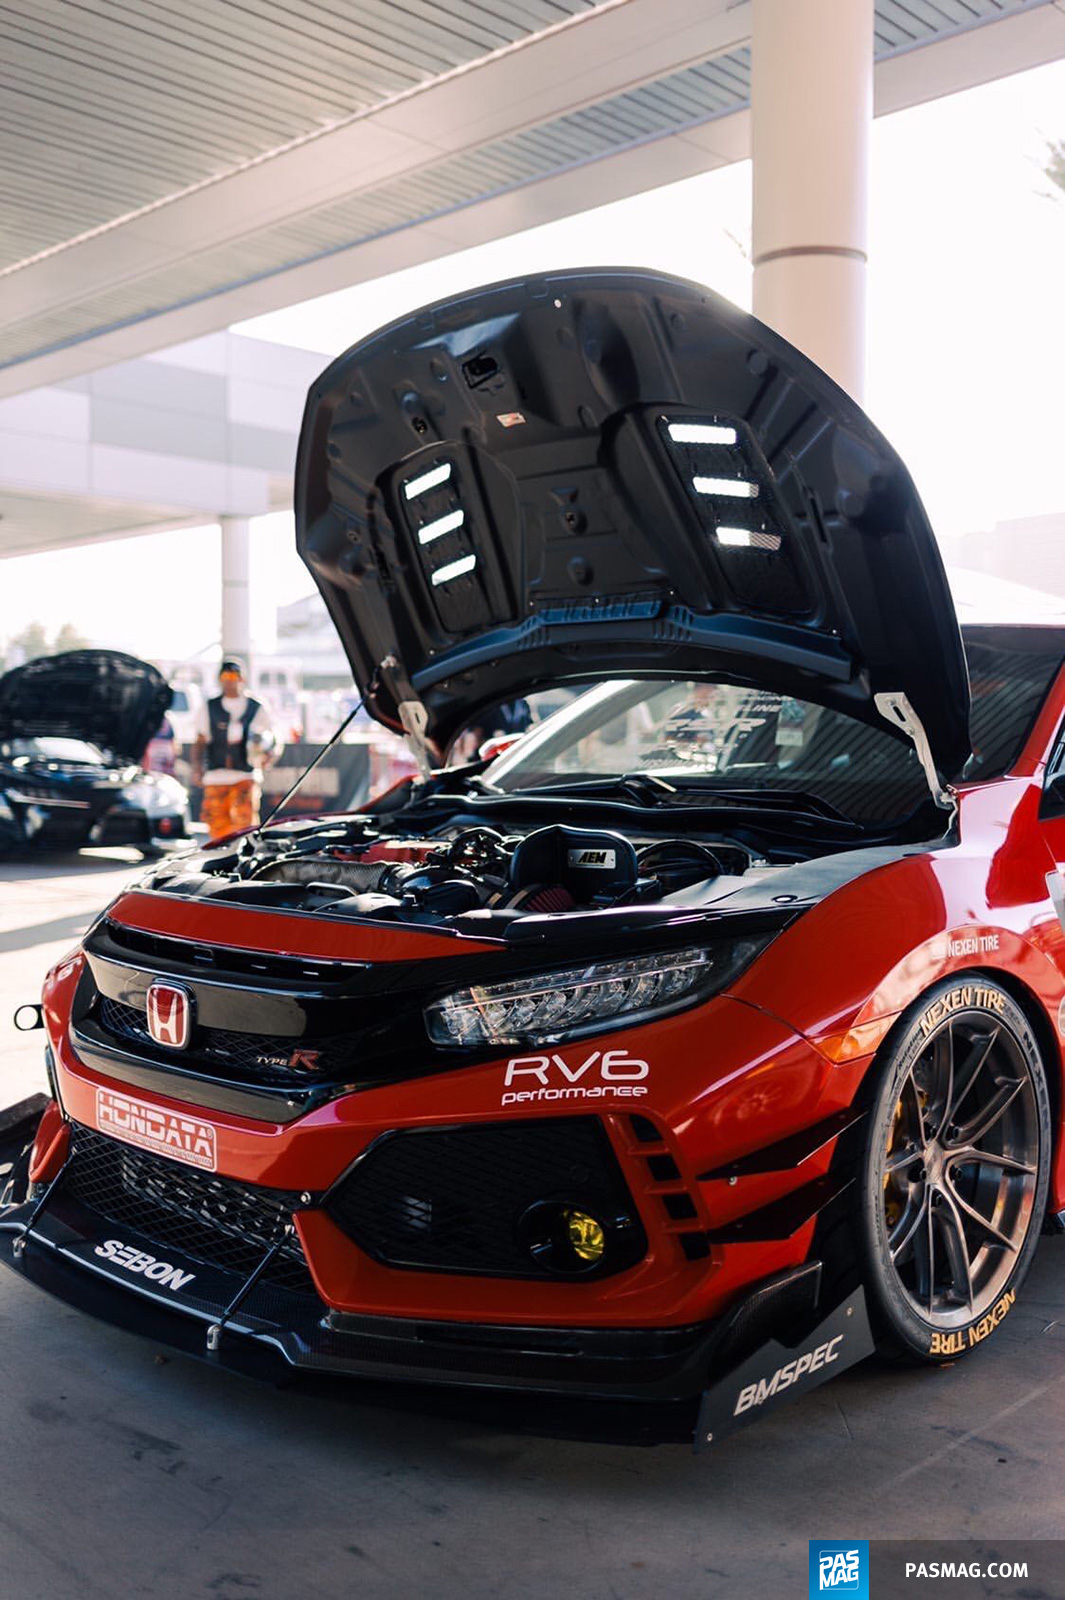 07 Jonny Guerra 2017 Honda Civic Type R pasmag tuner battlegrounds